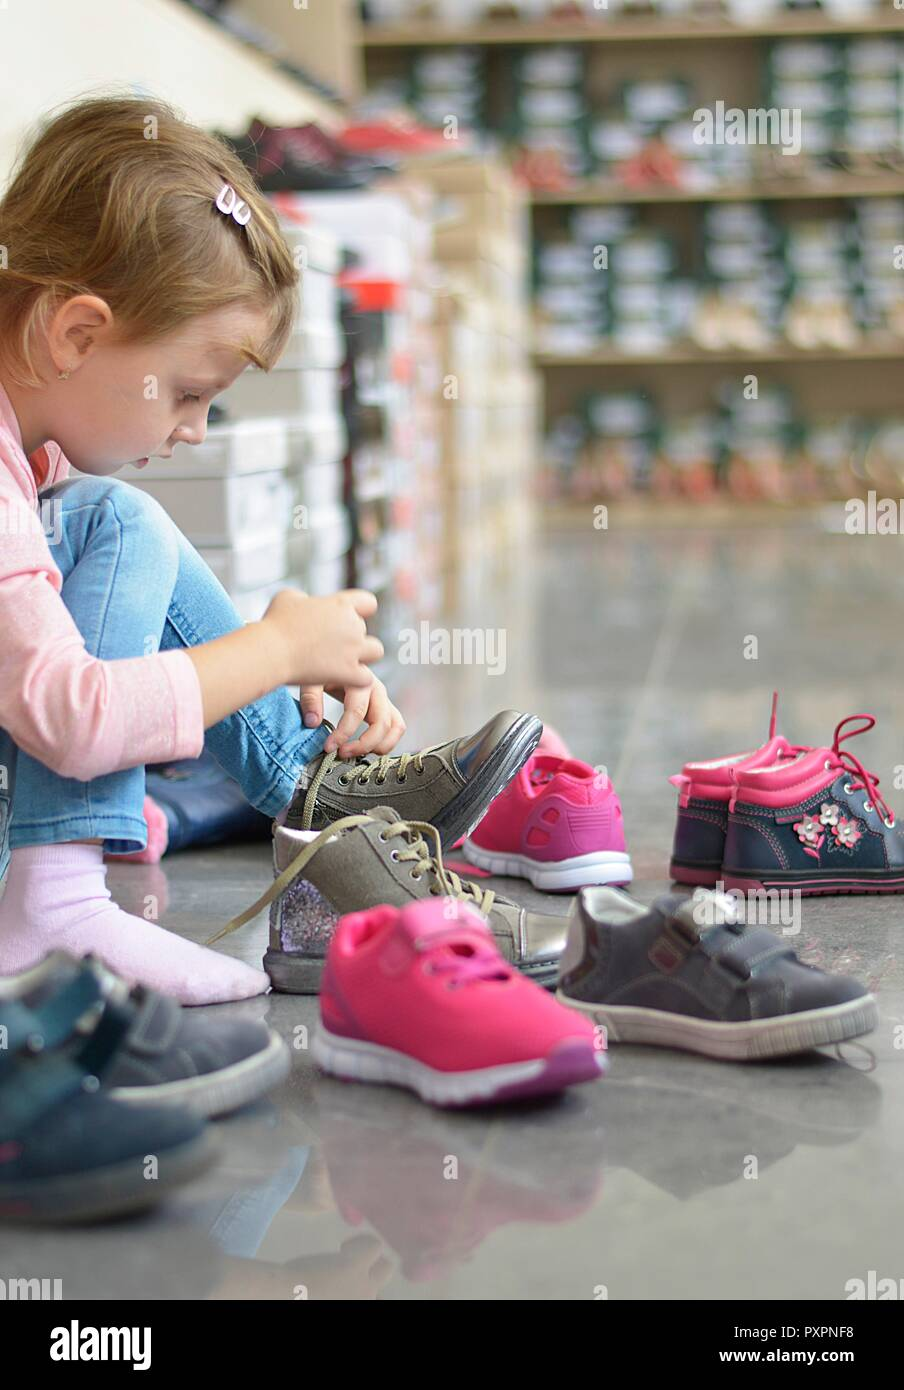 e737ab784 Put On Shoe Shoes Stock Photos & Put On Shoe Shoes Stock Images - Alamy